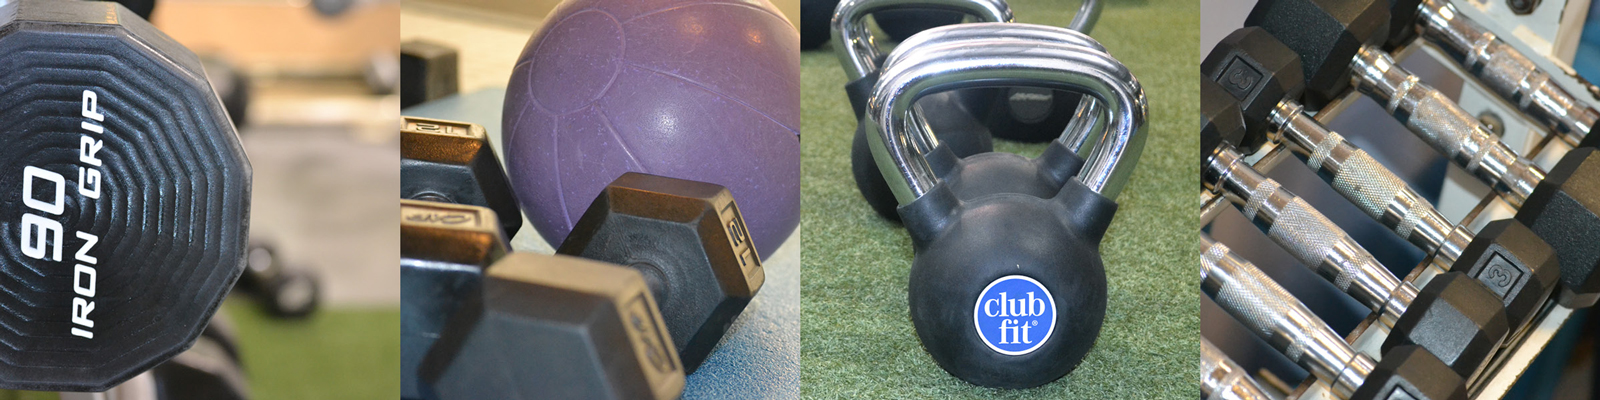 Fitness Personal Training | Westchester, NY | Club Fit